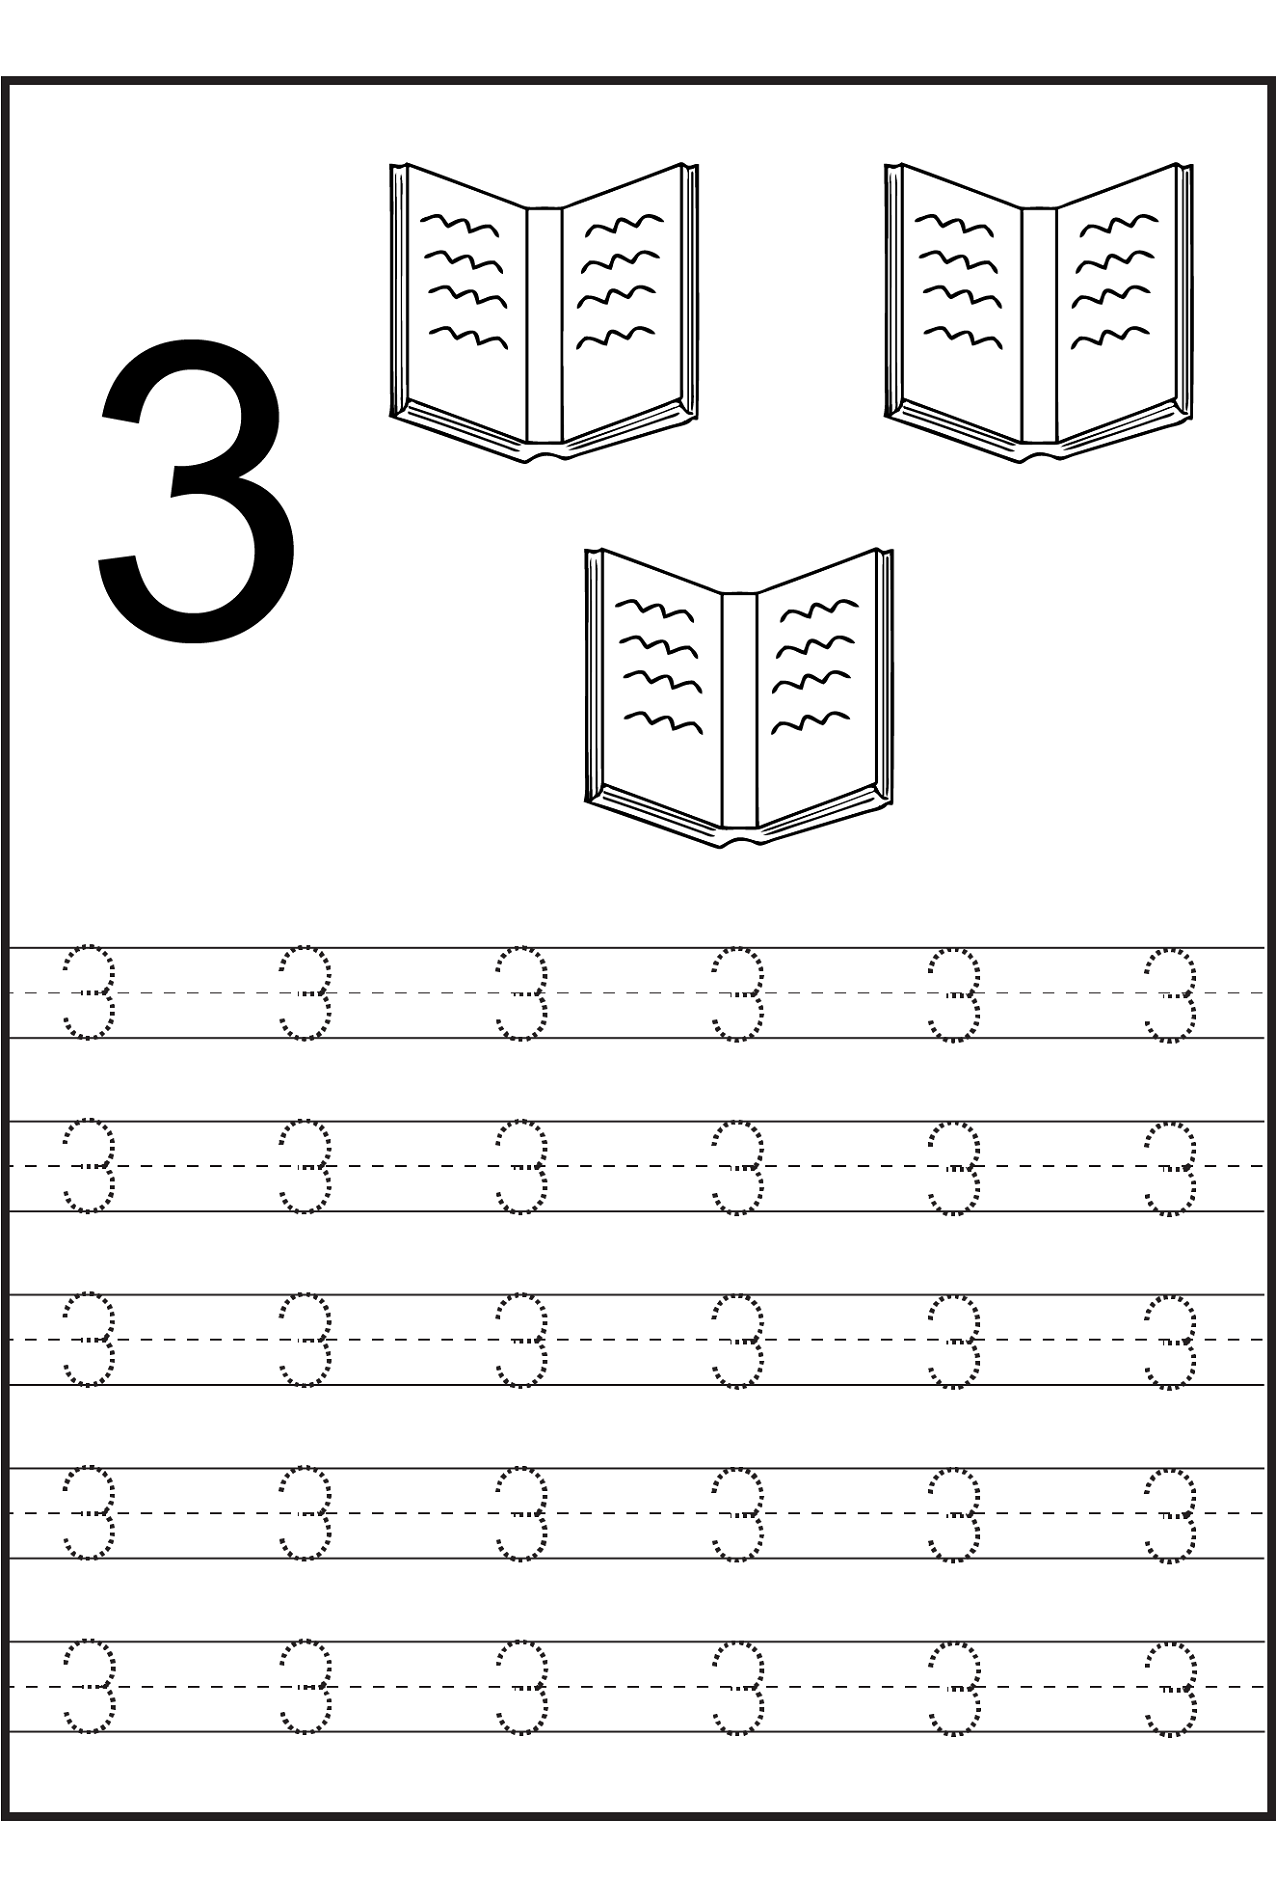 Worksheets For 2 Years Old Kindergarten Worksheets Numbers